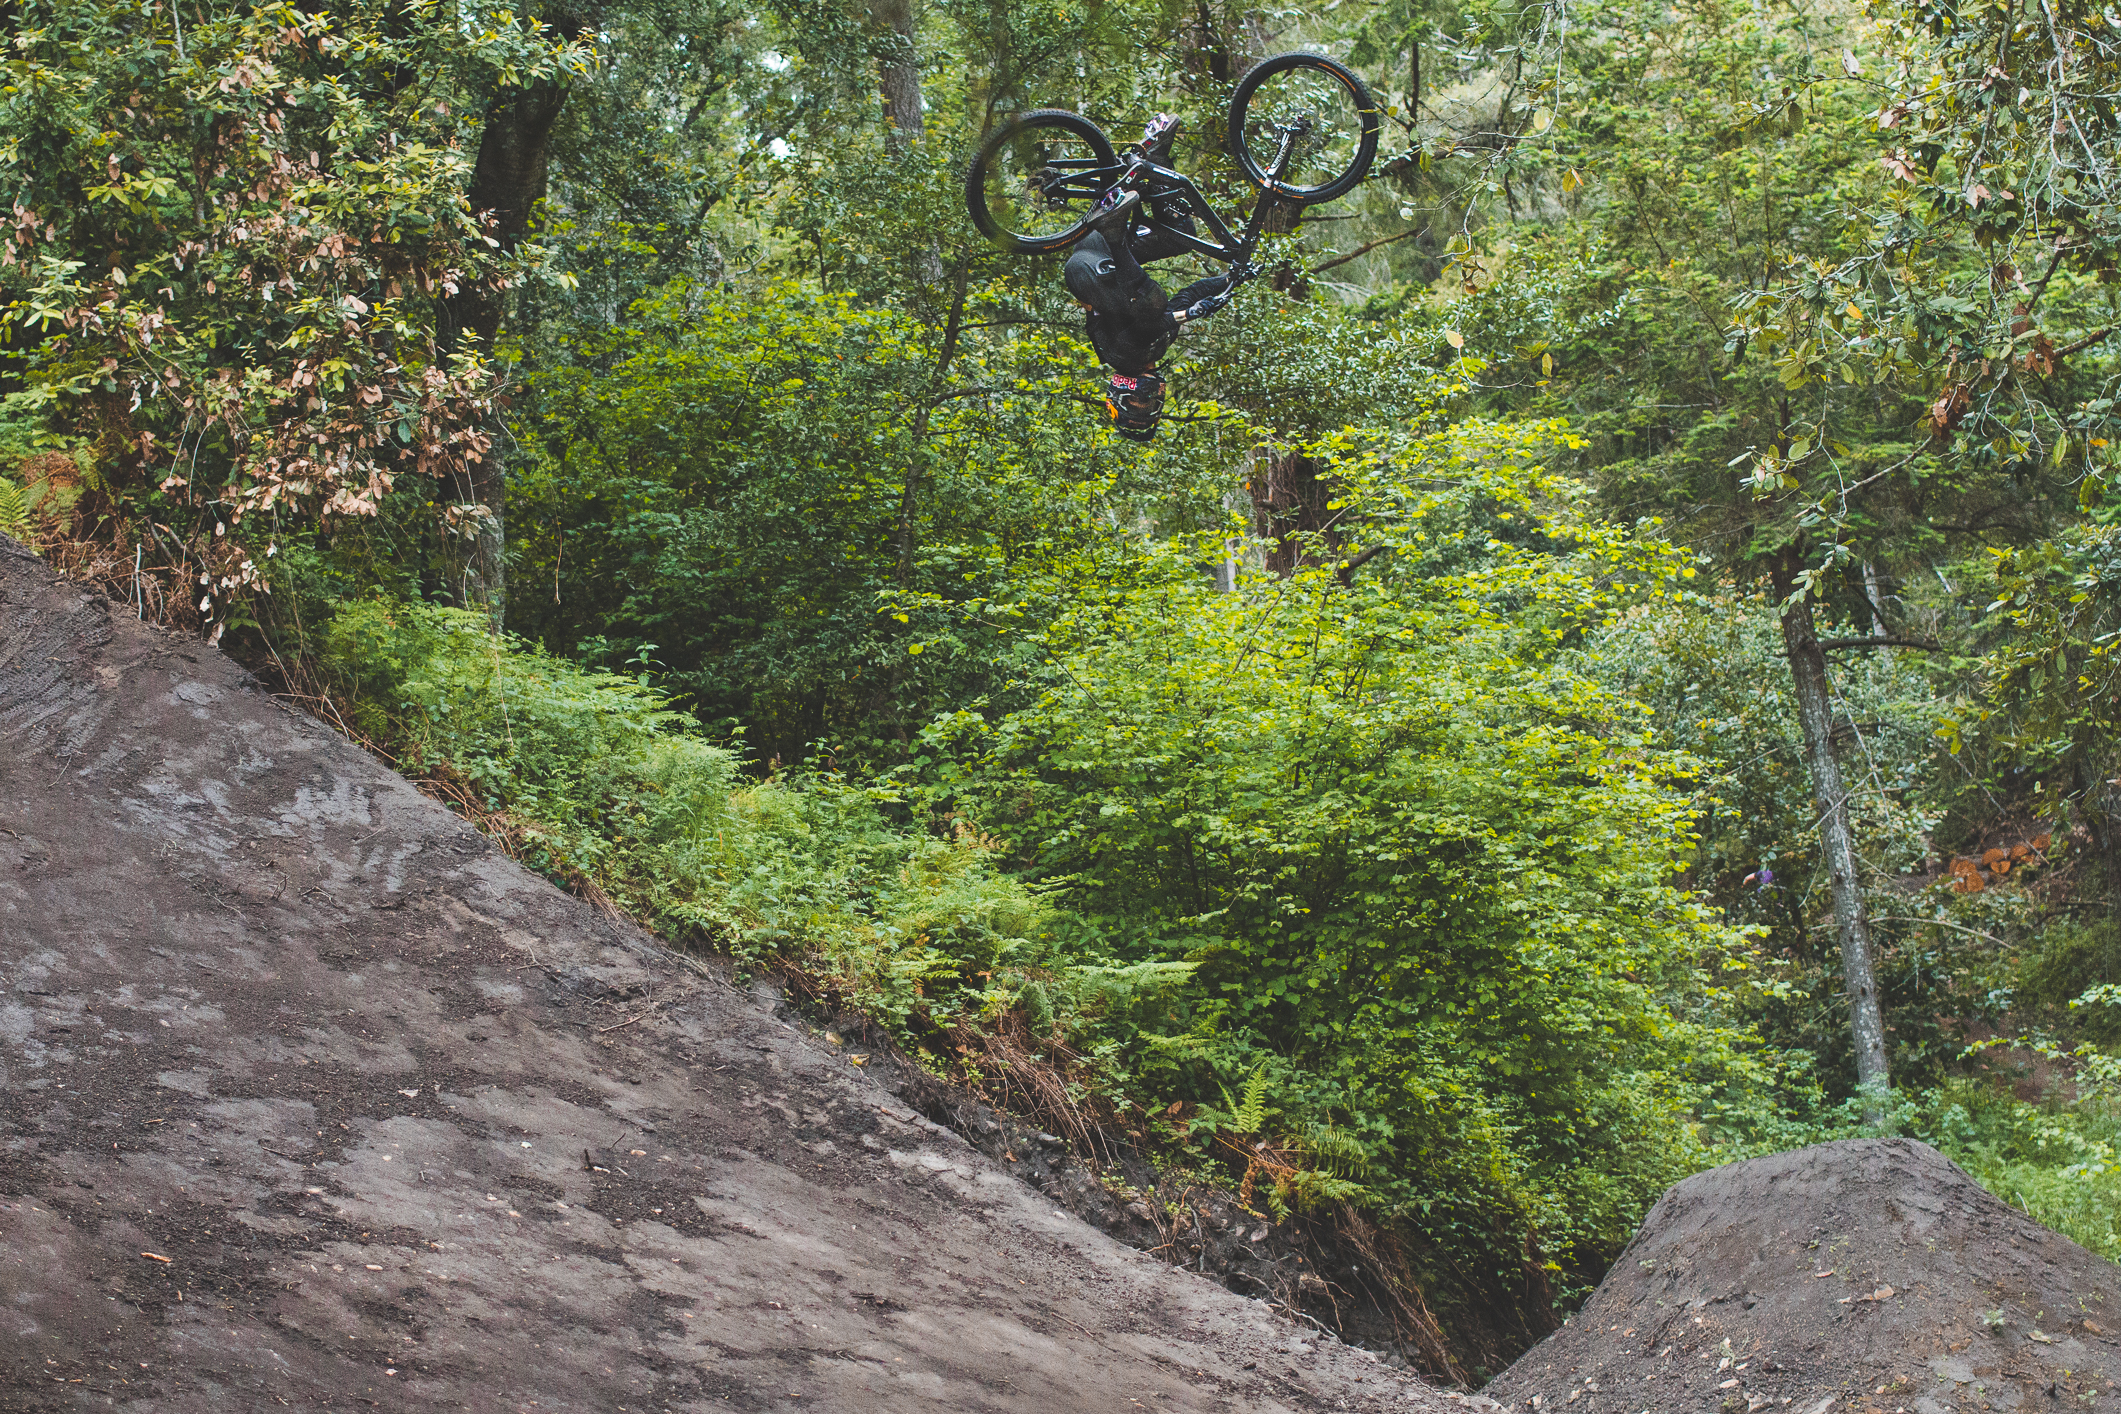 """When Andreu wasn't riding with his moto, he was spinning jumps on his 26"""" downhill bike, like this 450 over the second and biggest hip of the course."""